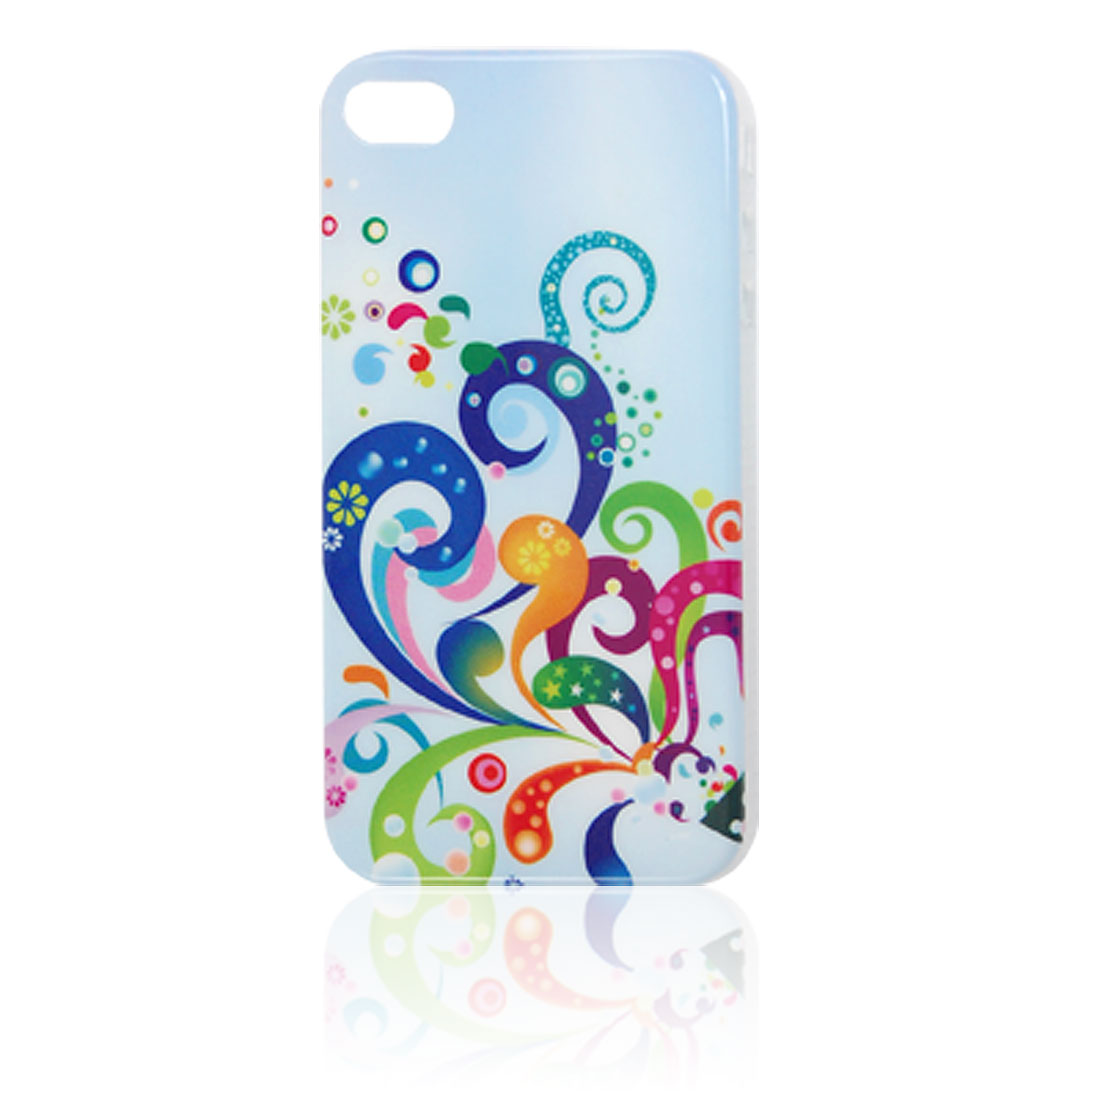 Clear Side Plastic Spiral Pattern IMD Back Cover for iPhone 4 4G